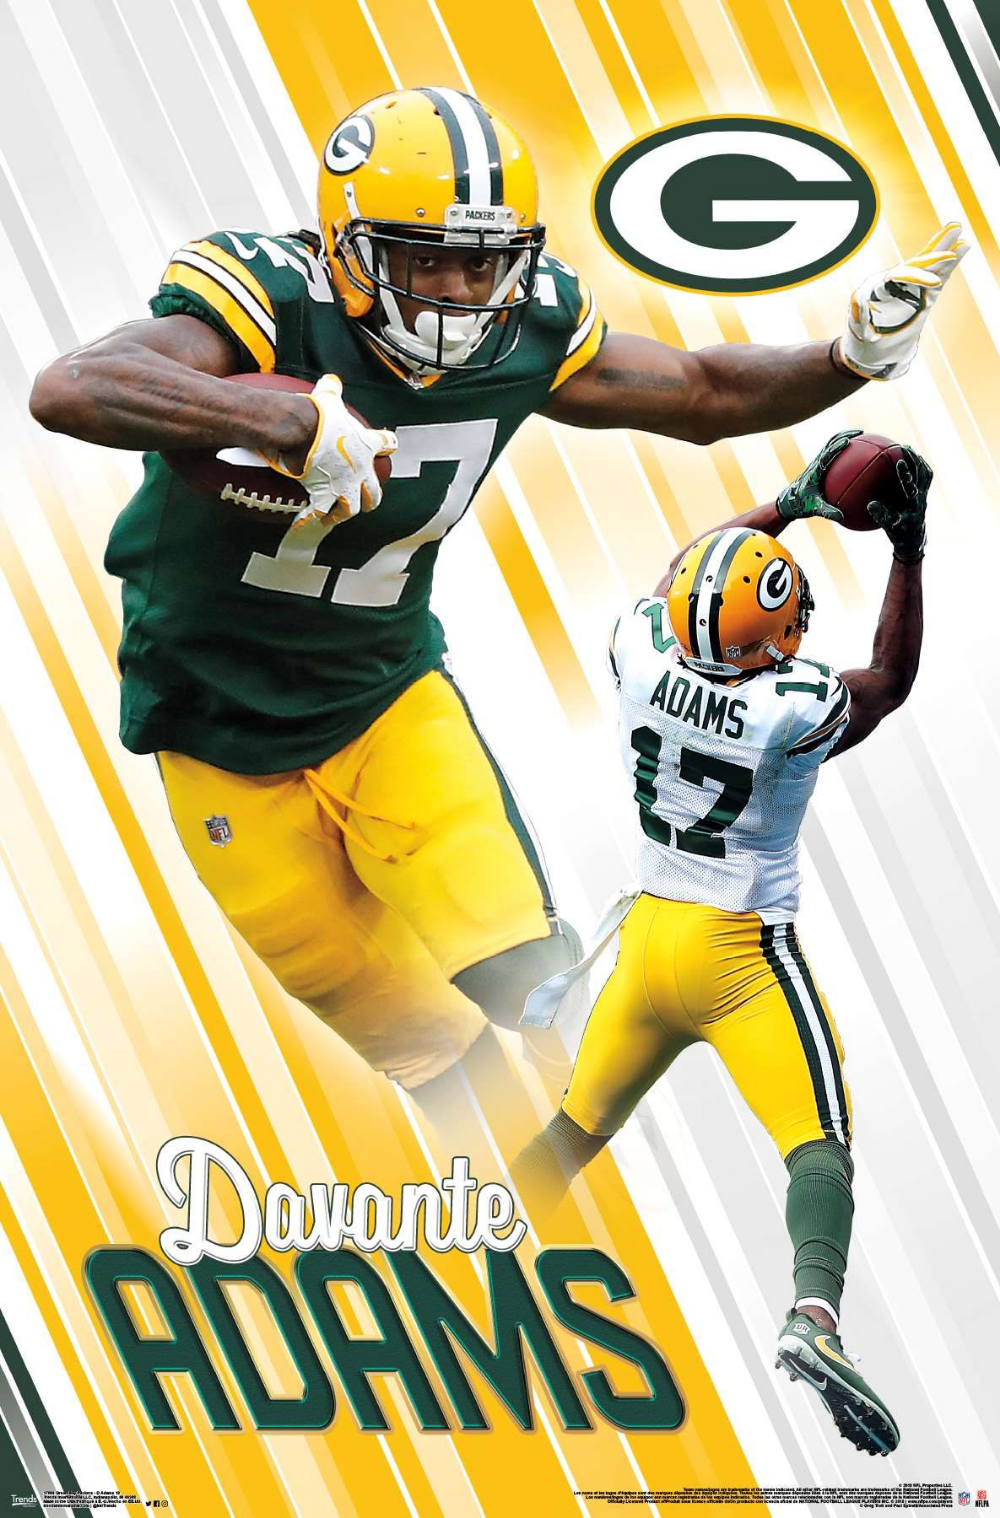 Green Bay Packers Devante Adams Greenbaypackers Nflfootball Nfl Footballposter Footballpartyd Nfl Green Bay Green Bay Packers Green Bay Packers Football